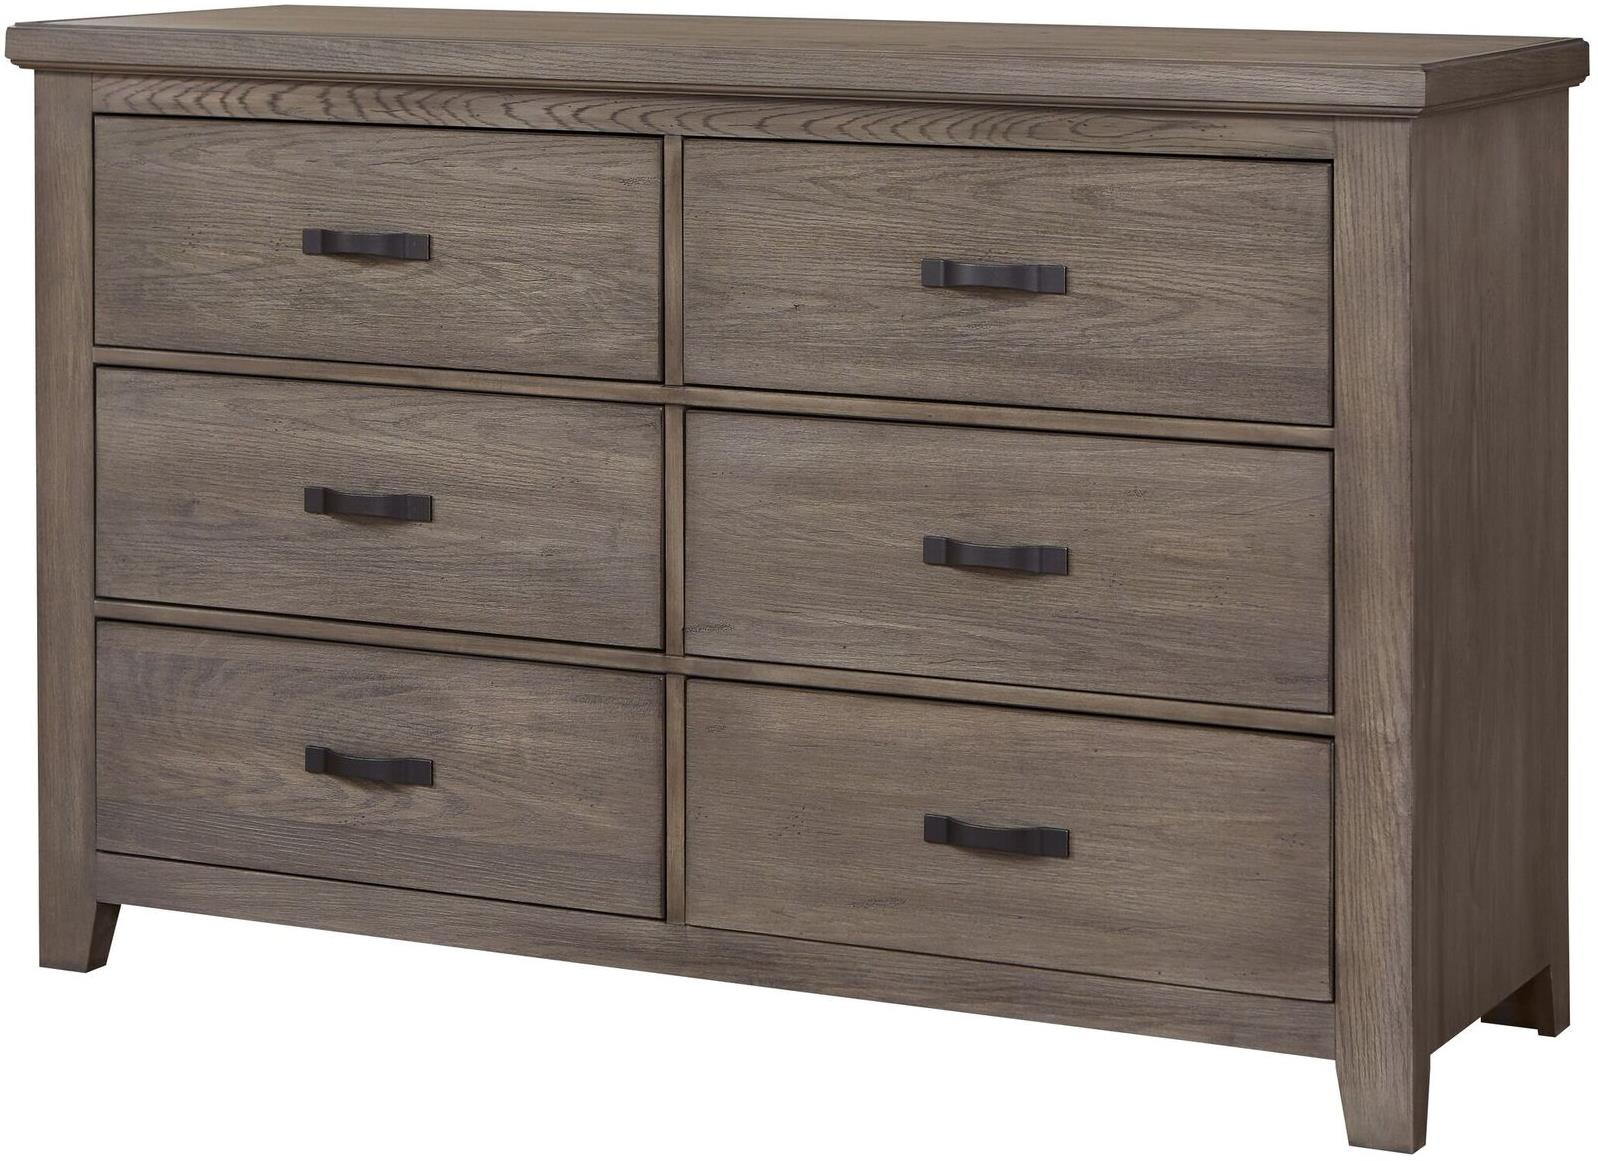 Vaughan Bassett Gramercy Park Storage Dresser-6 Drawer - Item Number: 516-002